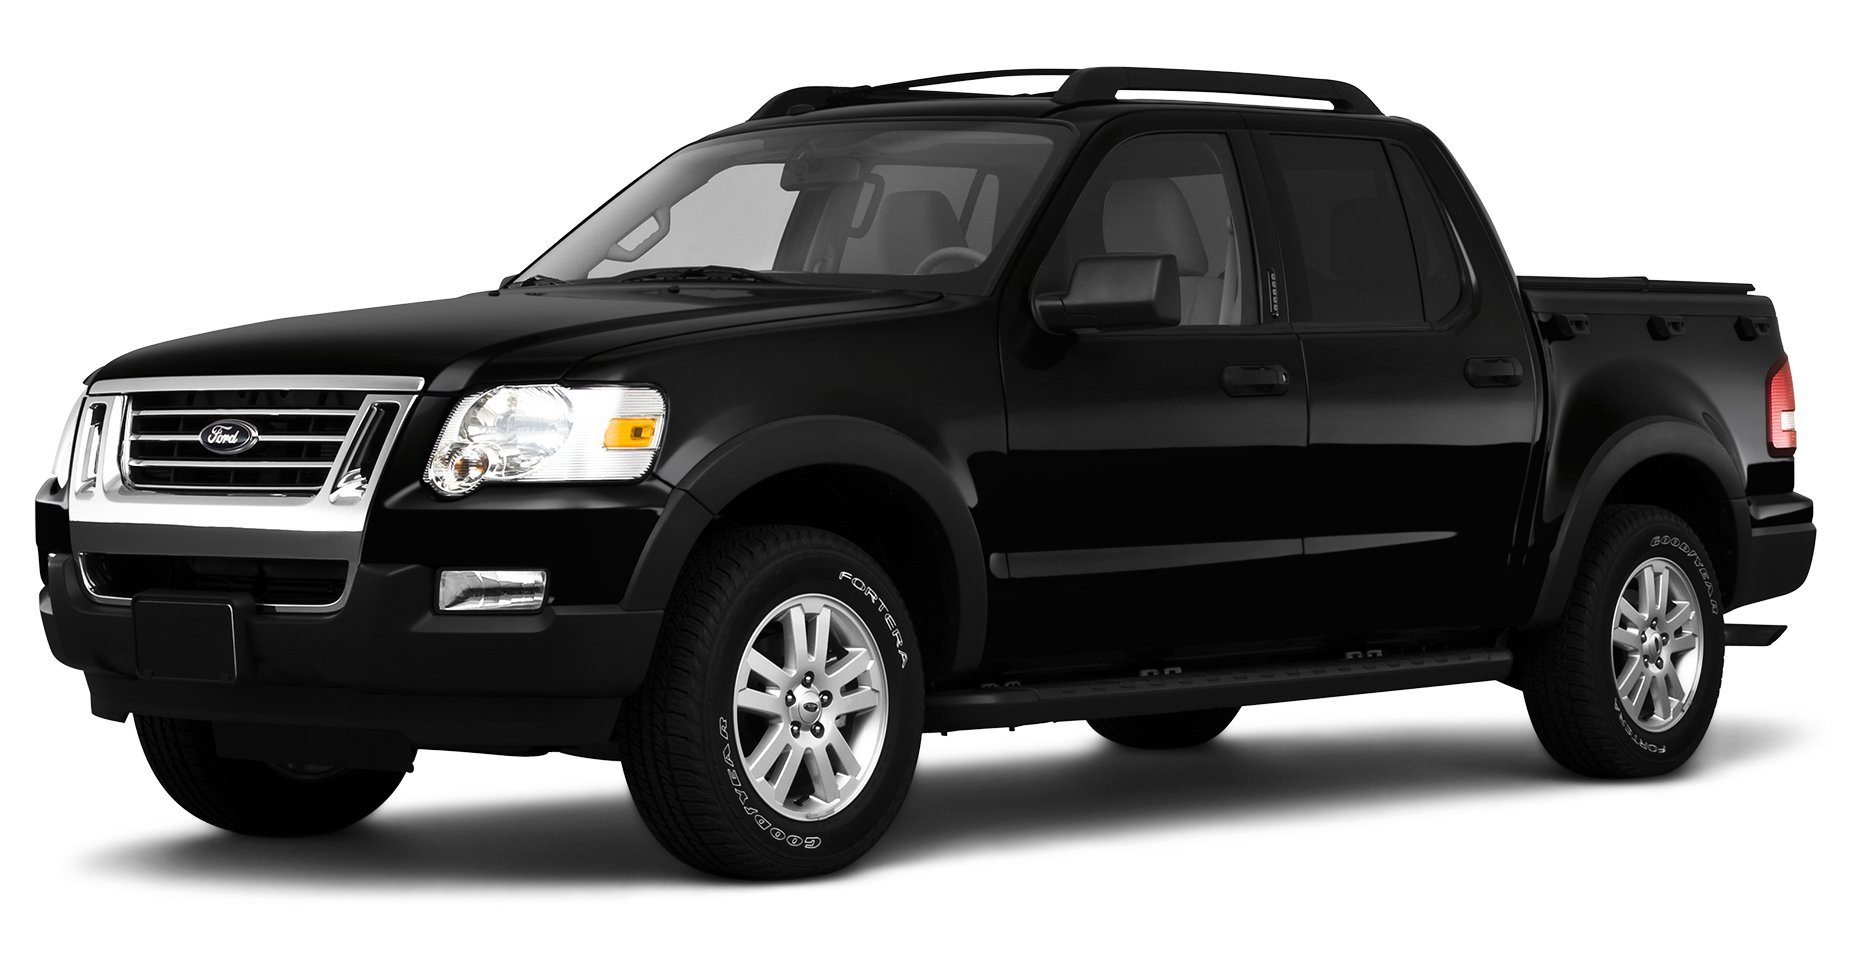 2010 ford explorer sport trac reviews images and specs vehicles. Black Bedroom Furniture Sets. Home Design Ideas